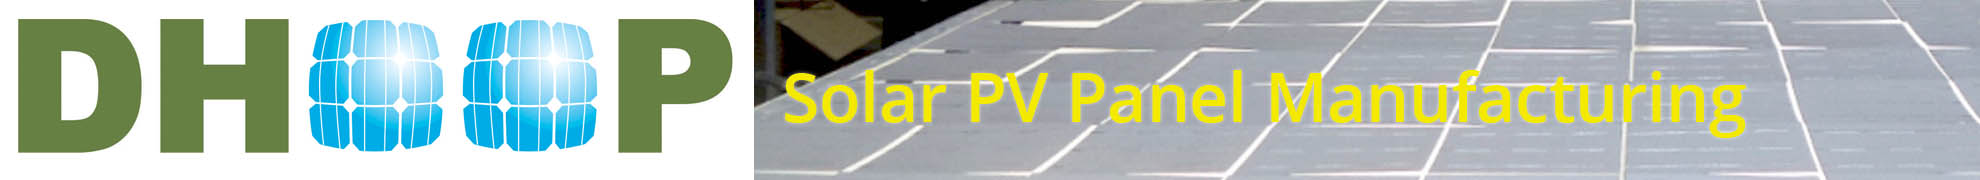 Solar PV Panel Manufacturing copy